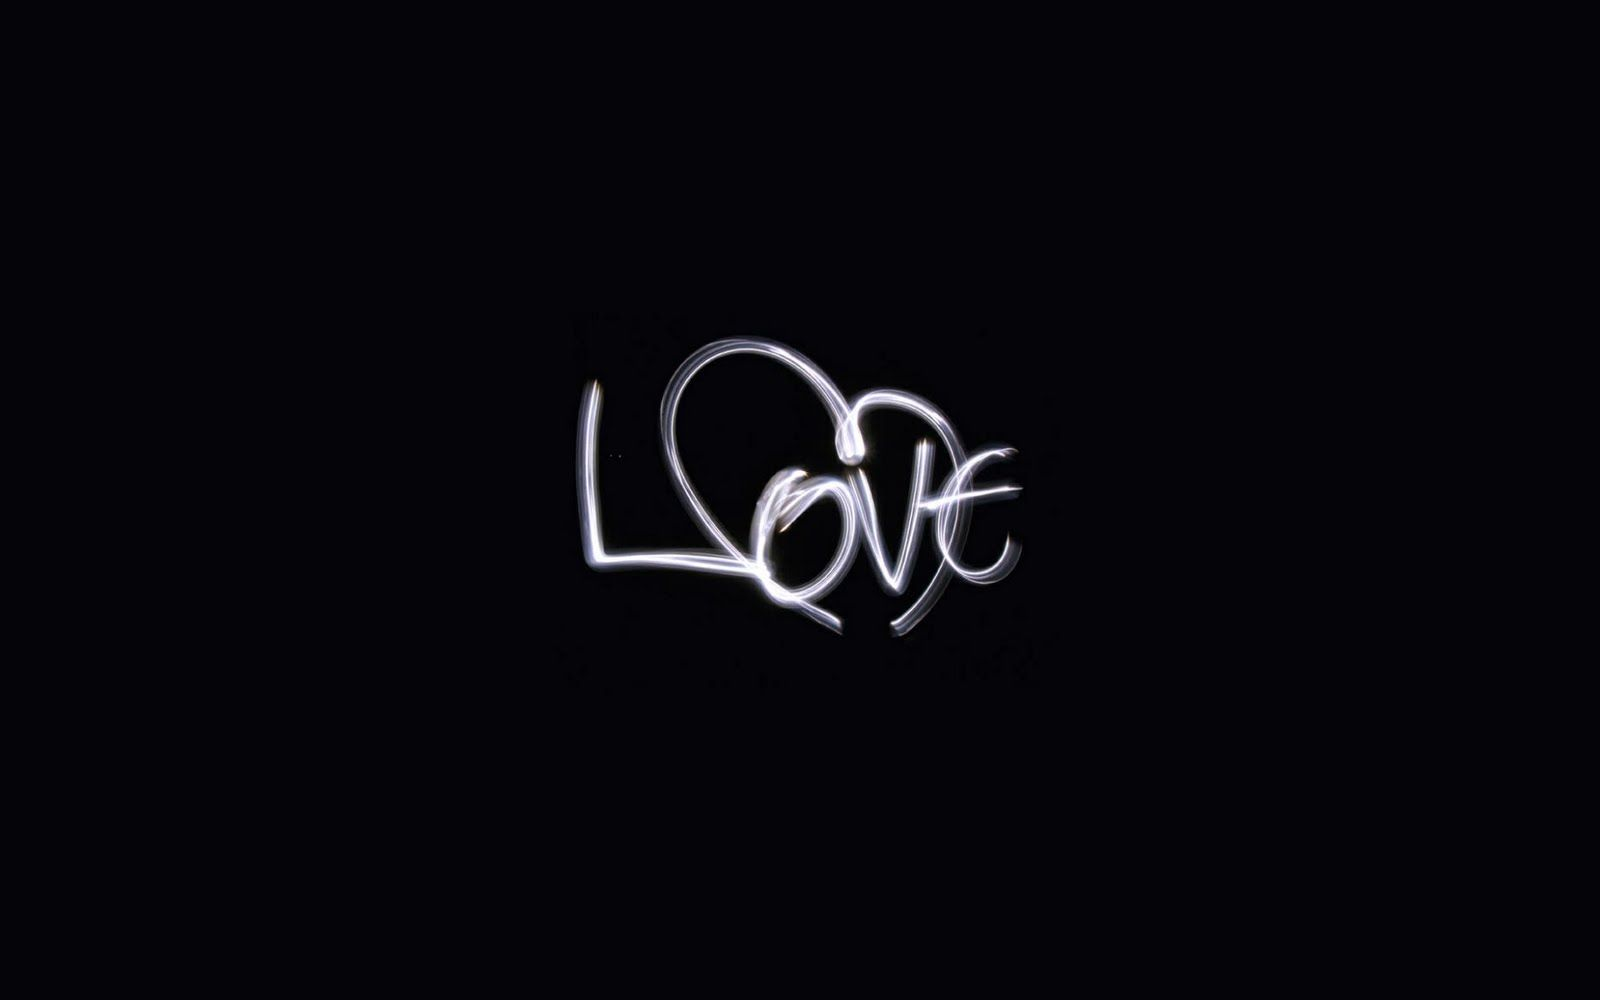 Love Black Wallpaper Pretty Backgrounds Hd Best Hd Wallpapers